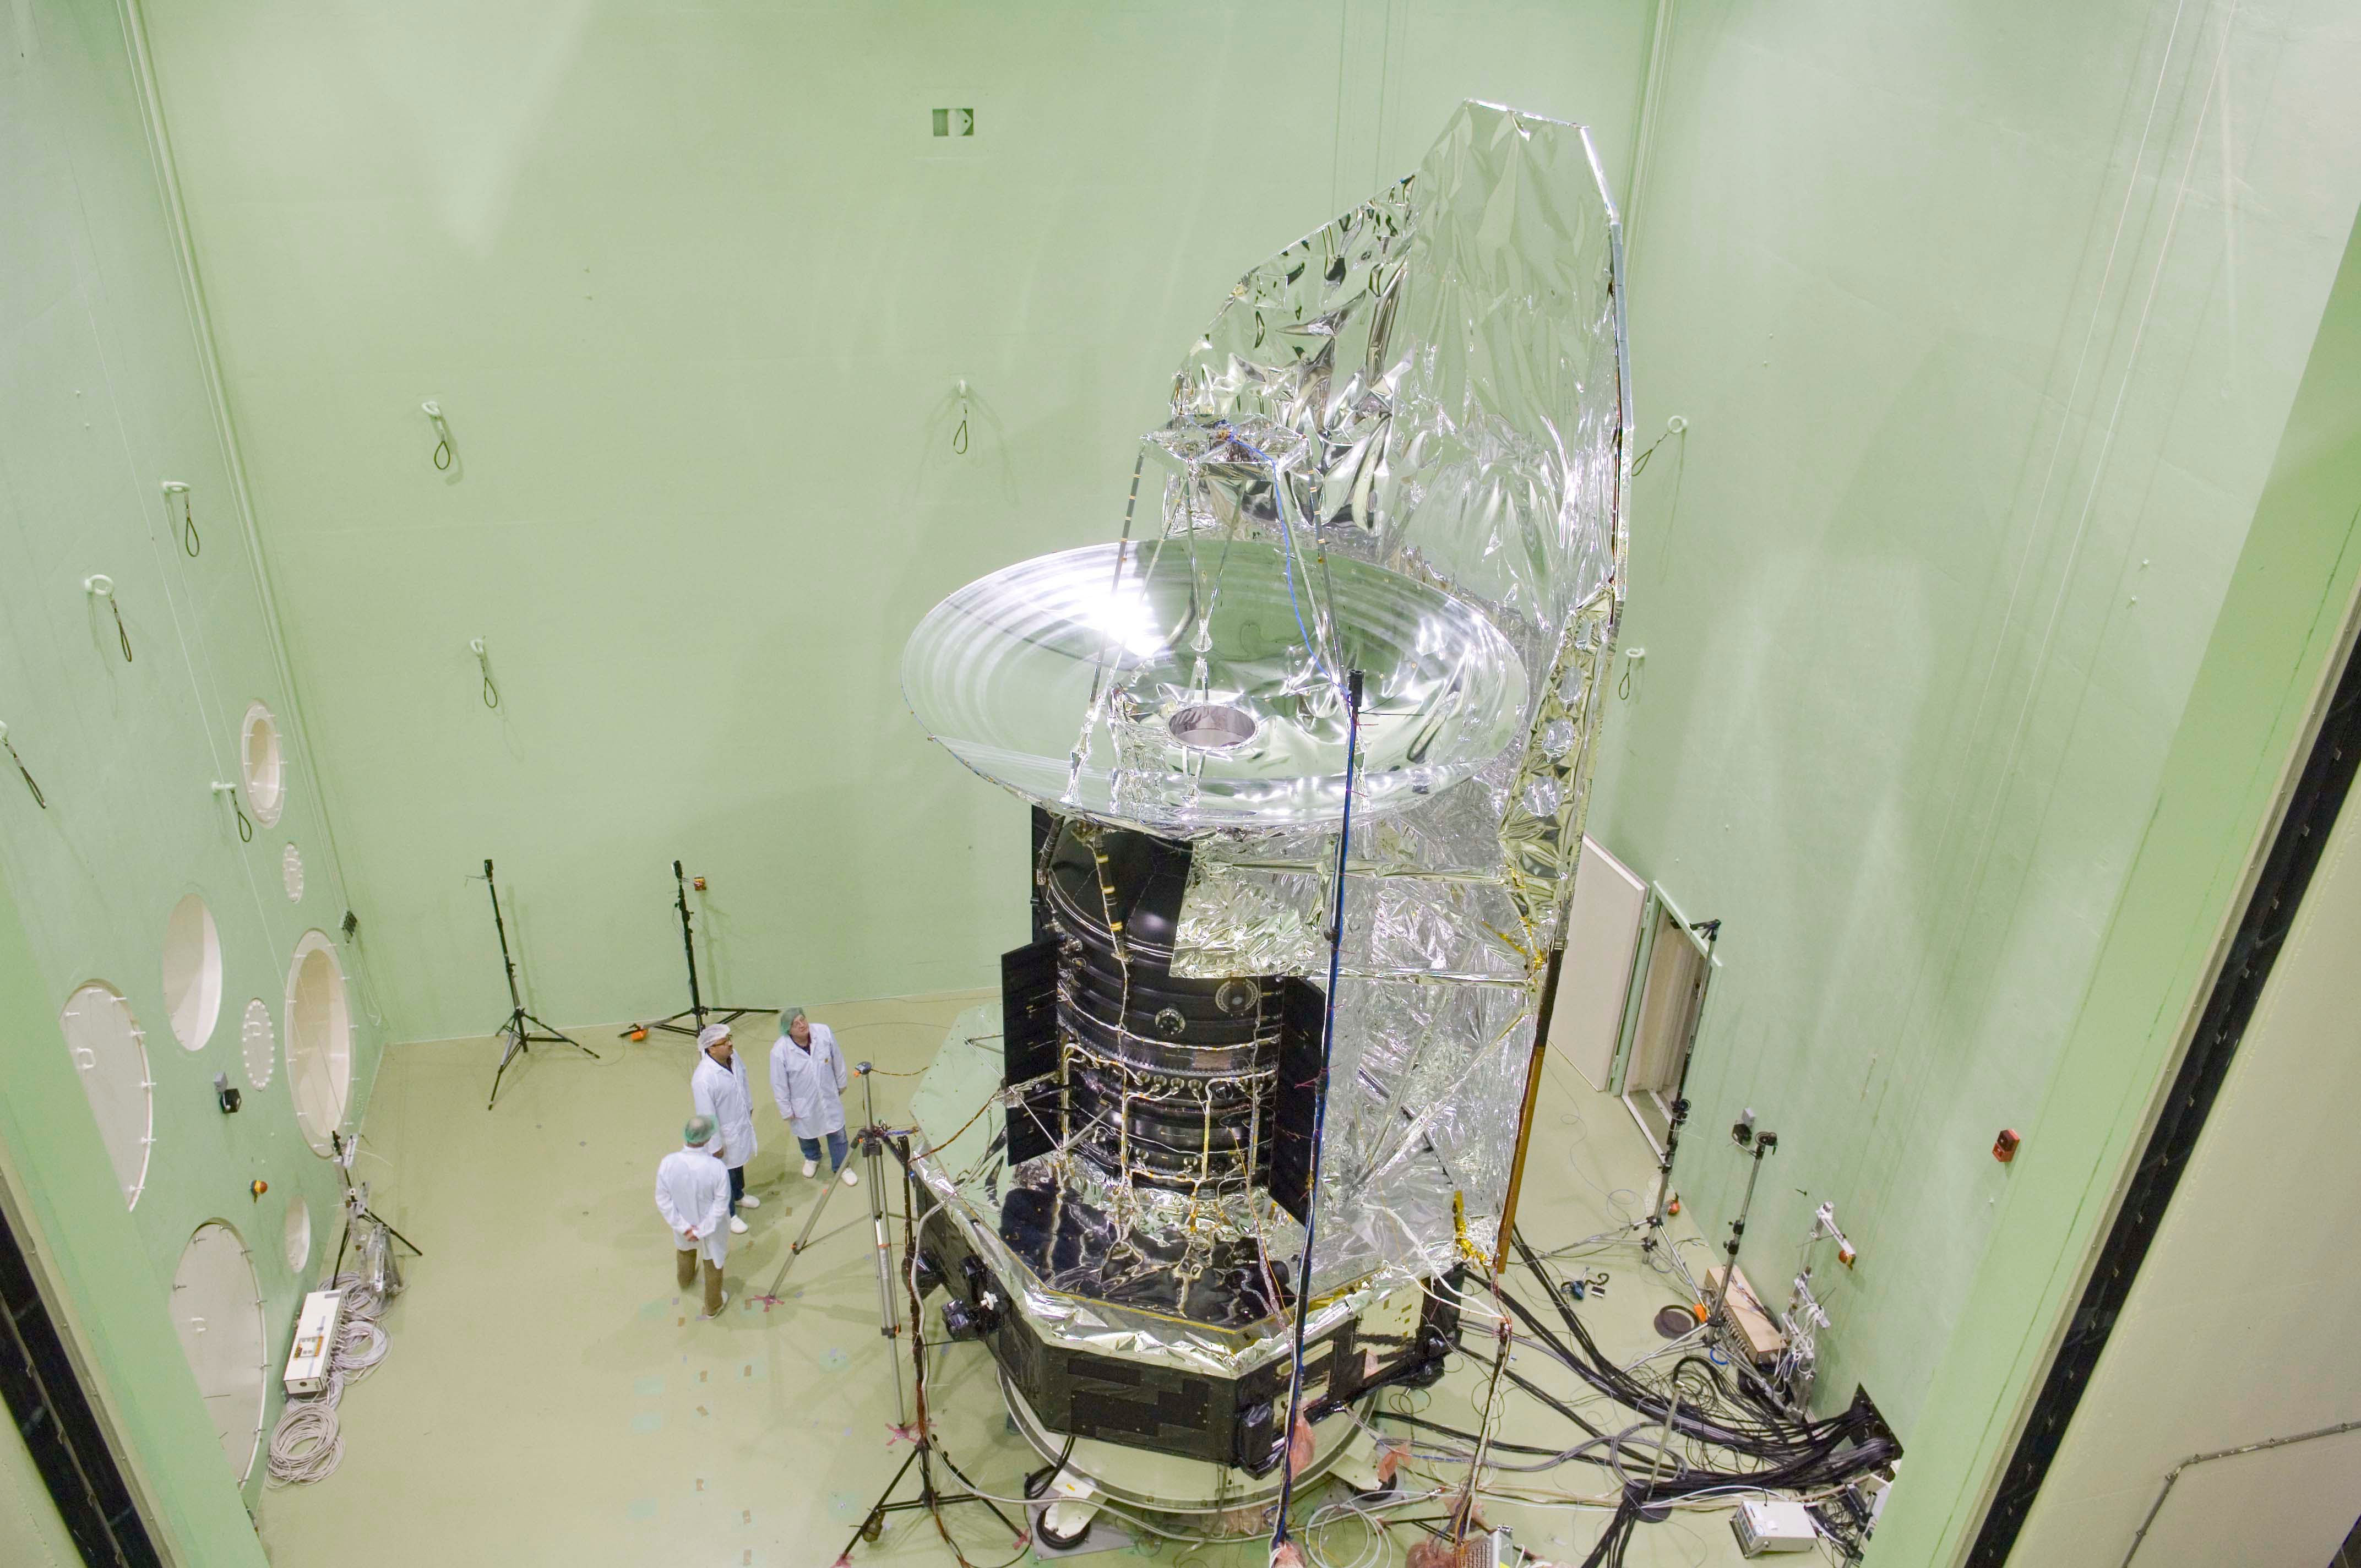 This Insanely Loud Sound System Simulates the Roar of a Rocket Launch